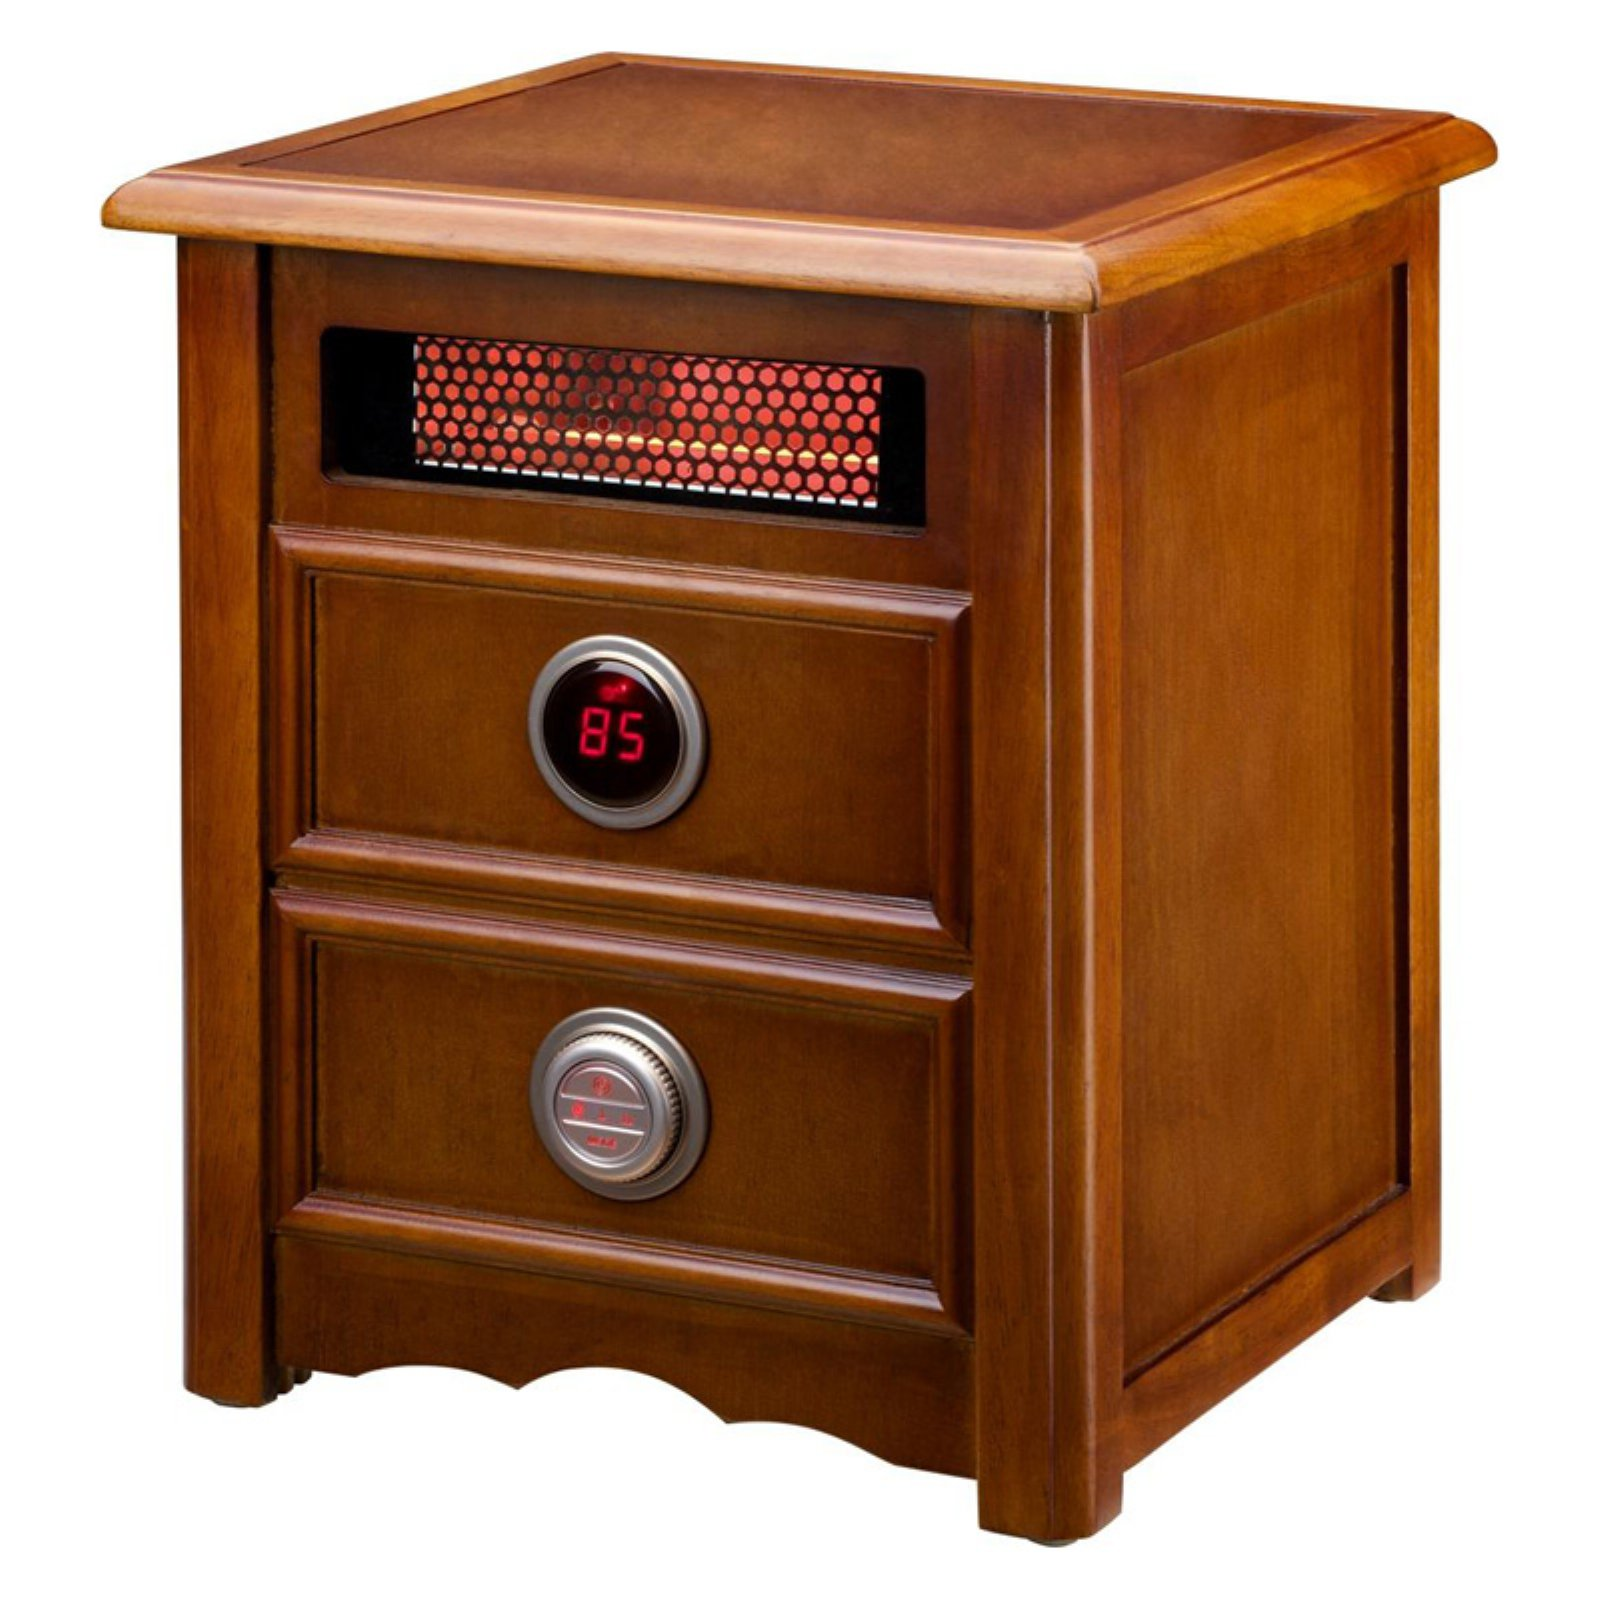 Dr. Infrared Heater DR-999 1500W Advanced Dual Heating System with Nightstand Design,... by Dr. Heater USA